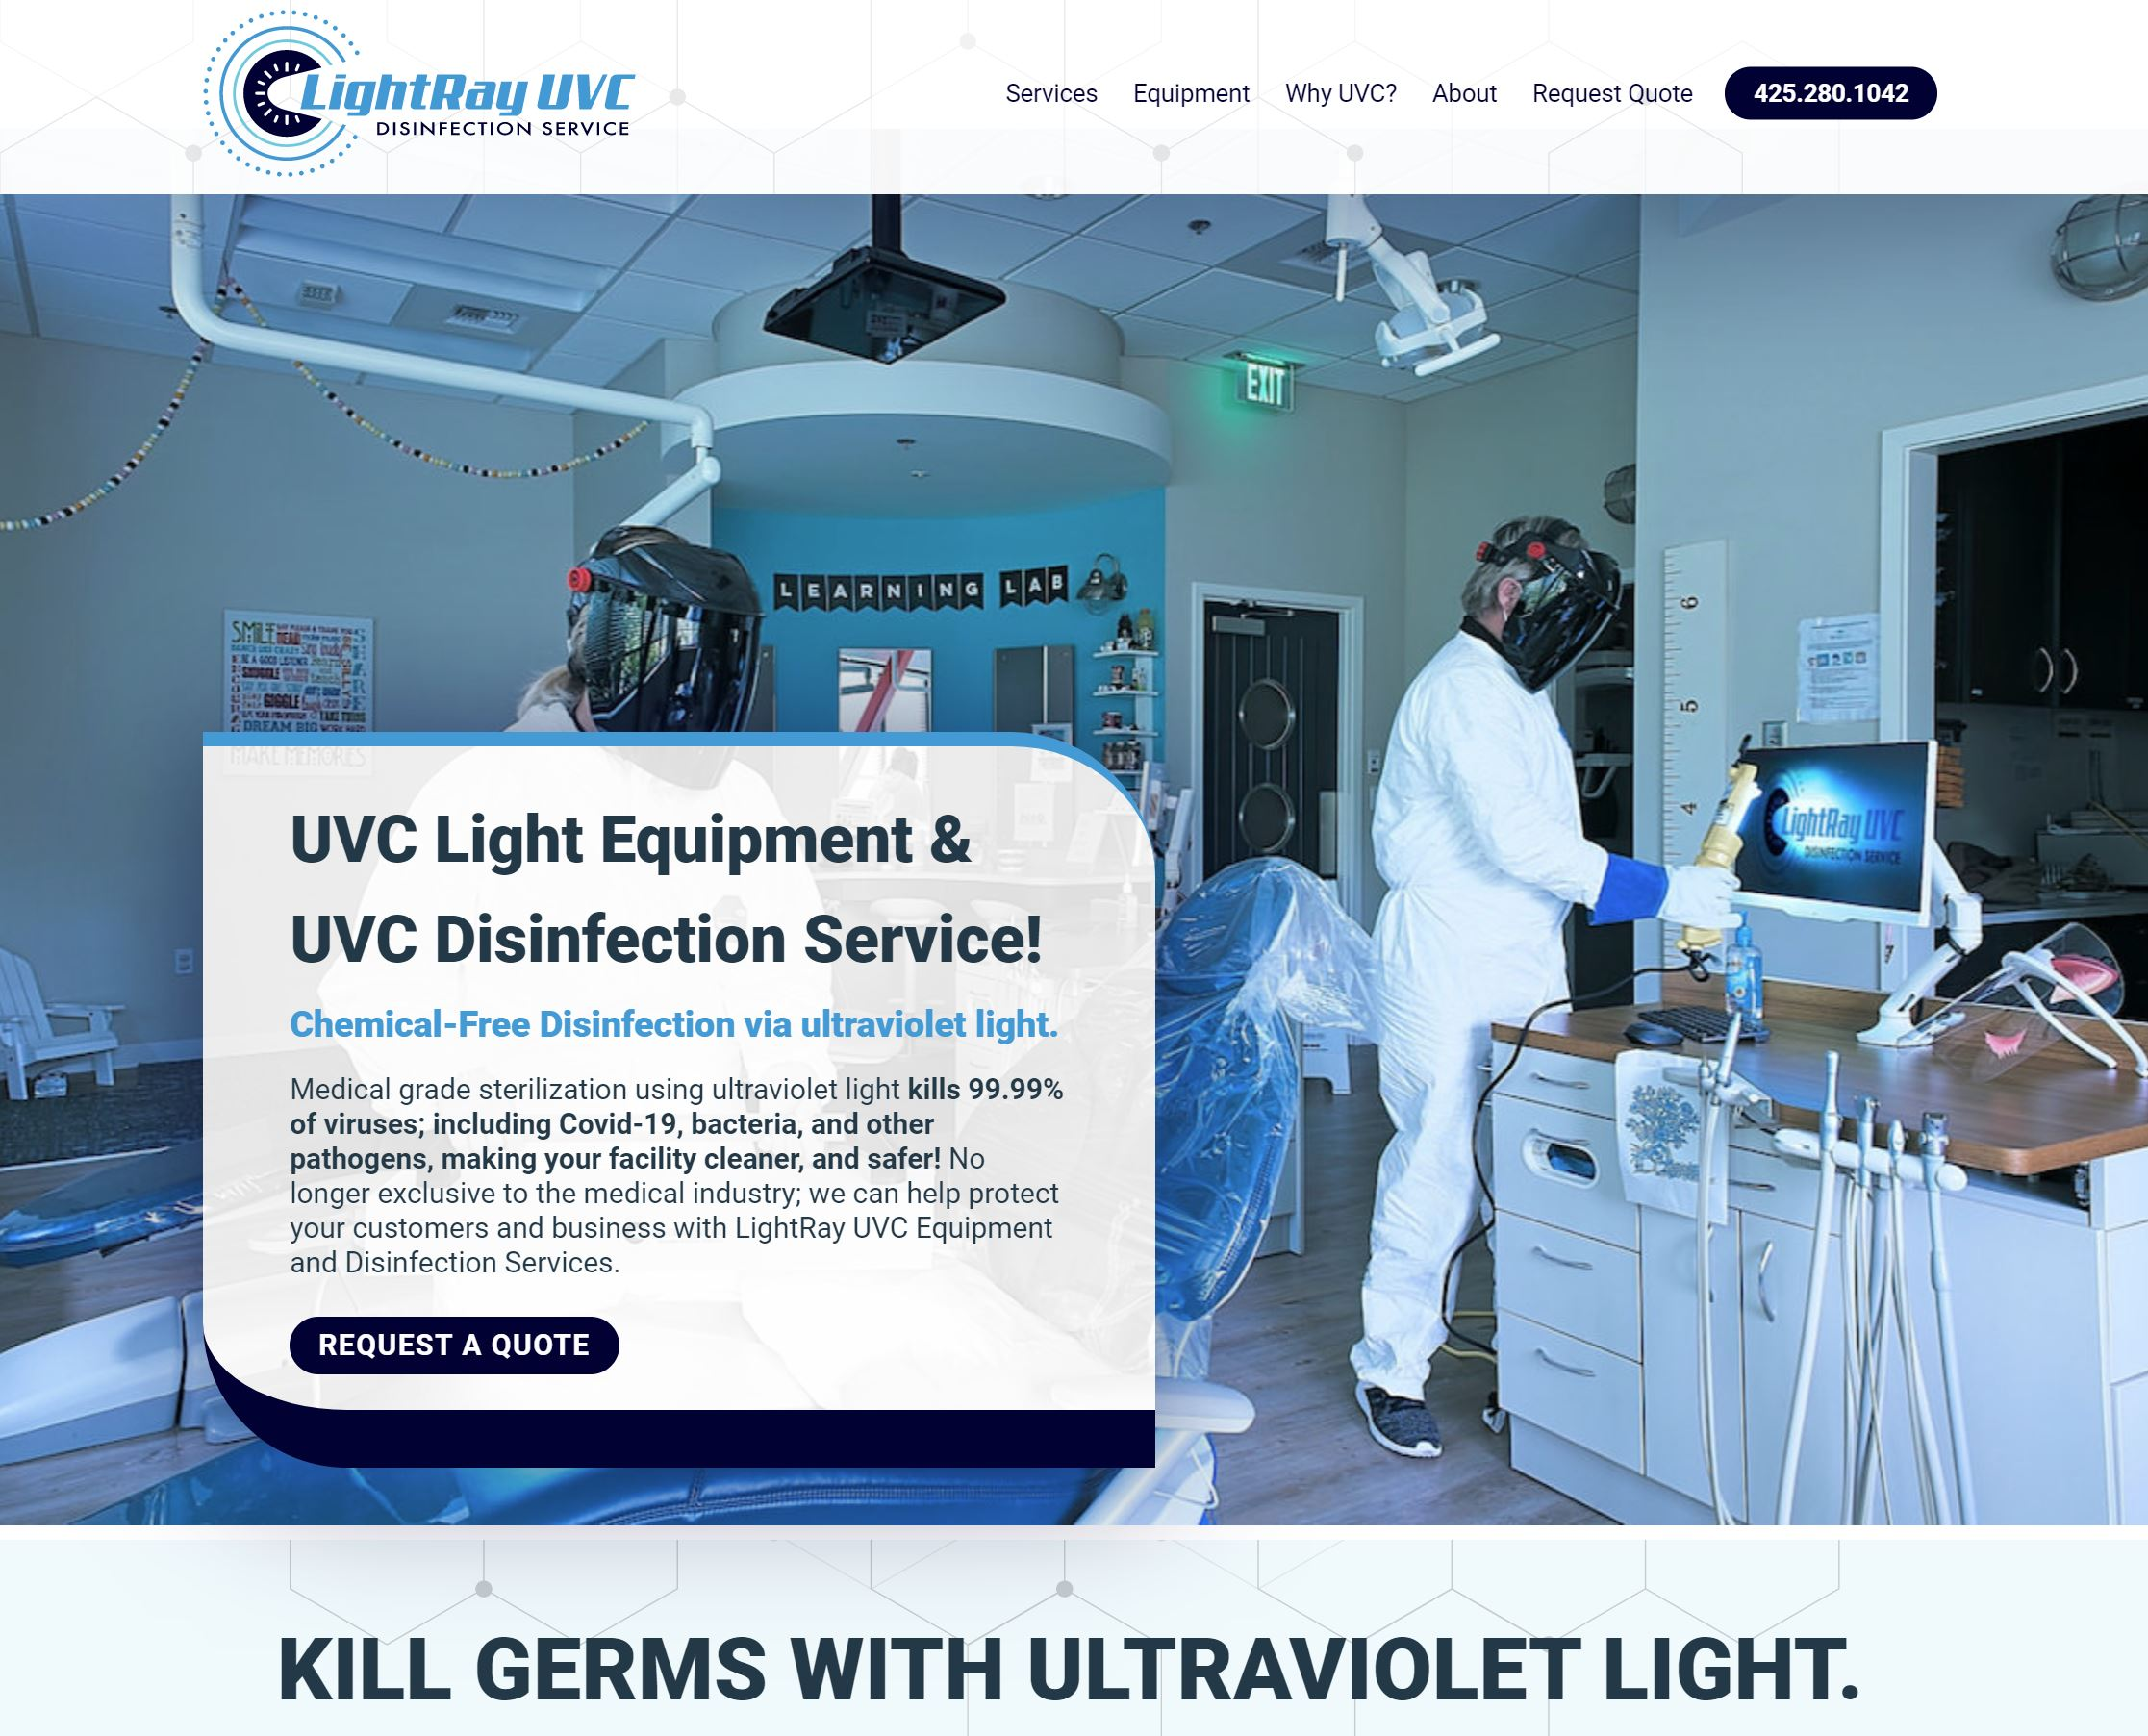 LightRay UVC New Website